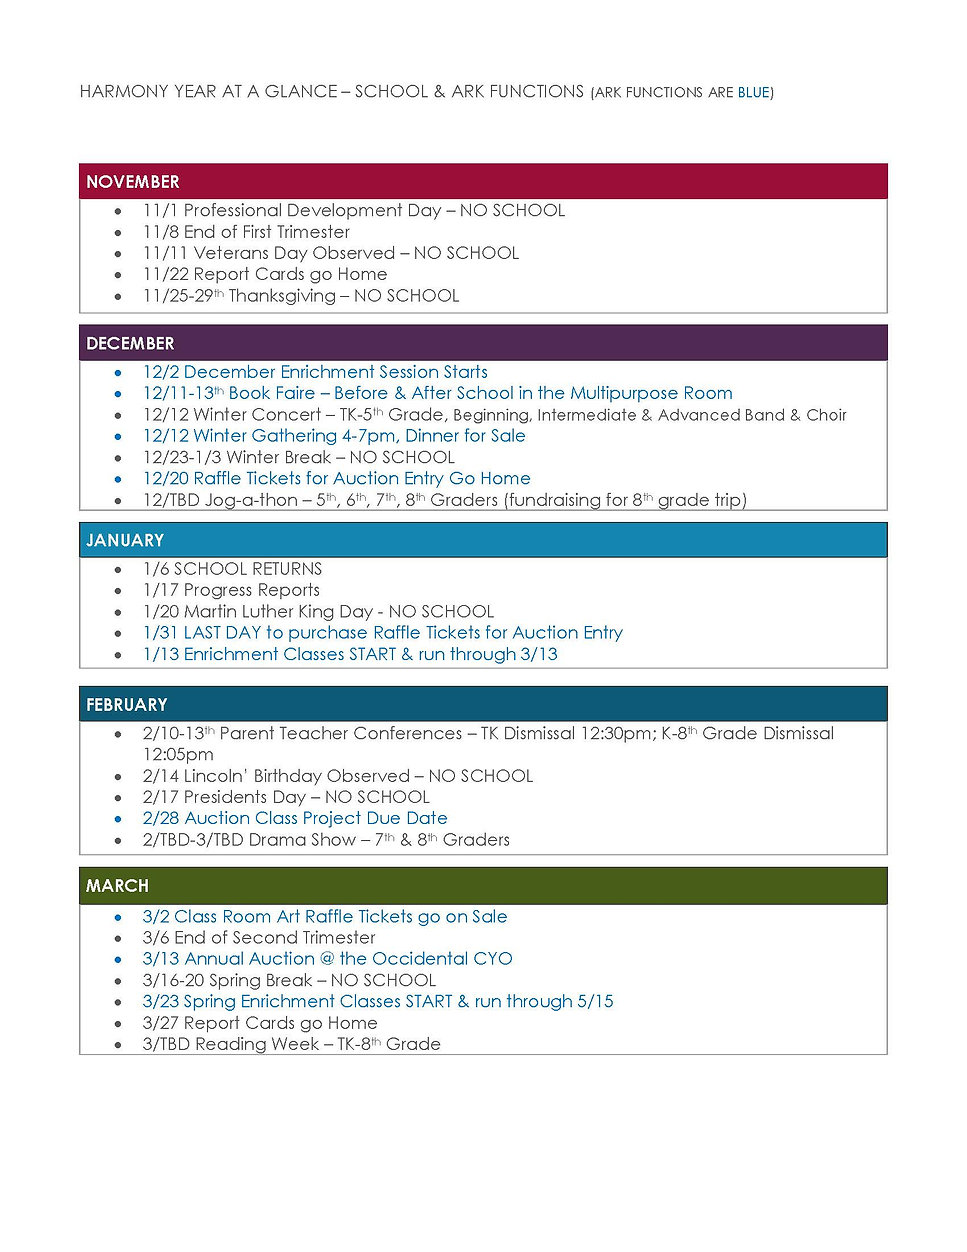 Harmony year at a glance Updated 11.19_P